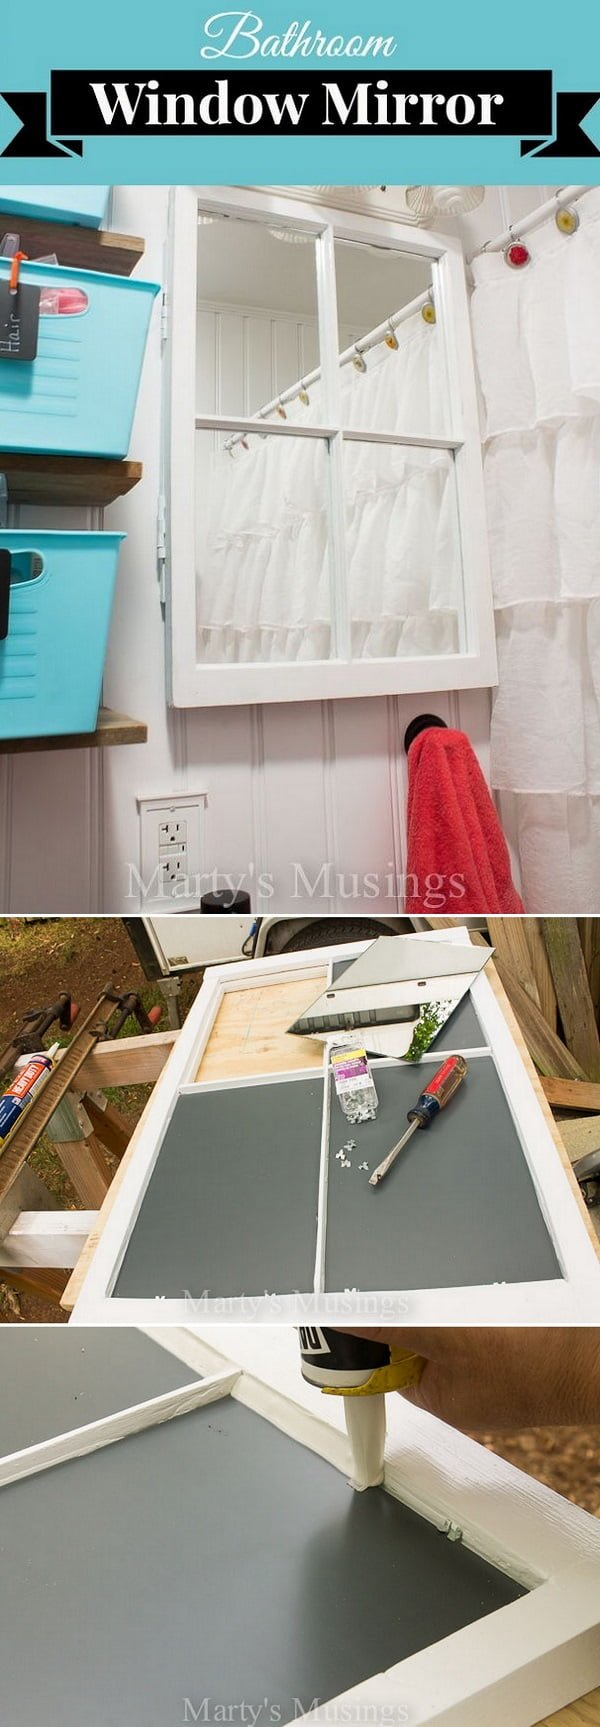 Check out the tutorial how to make a DIY bathroom mirror from an old window